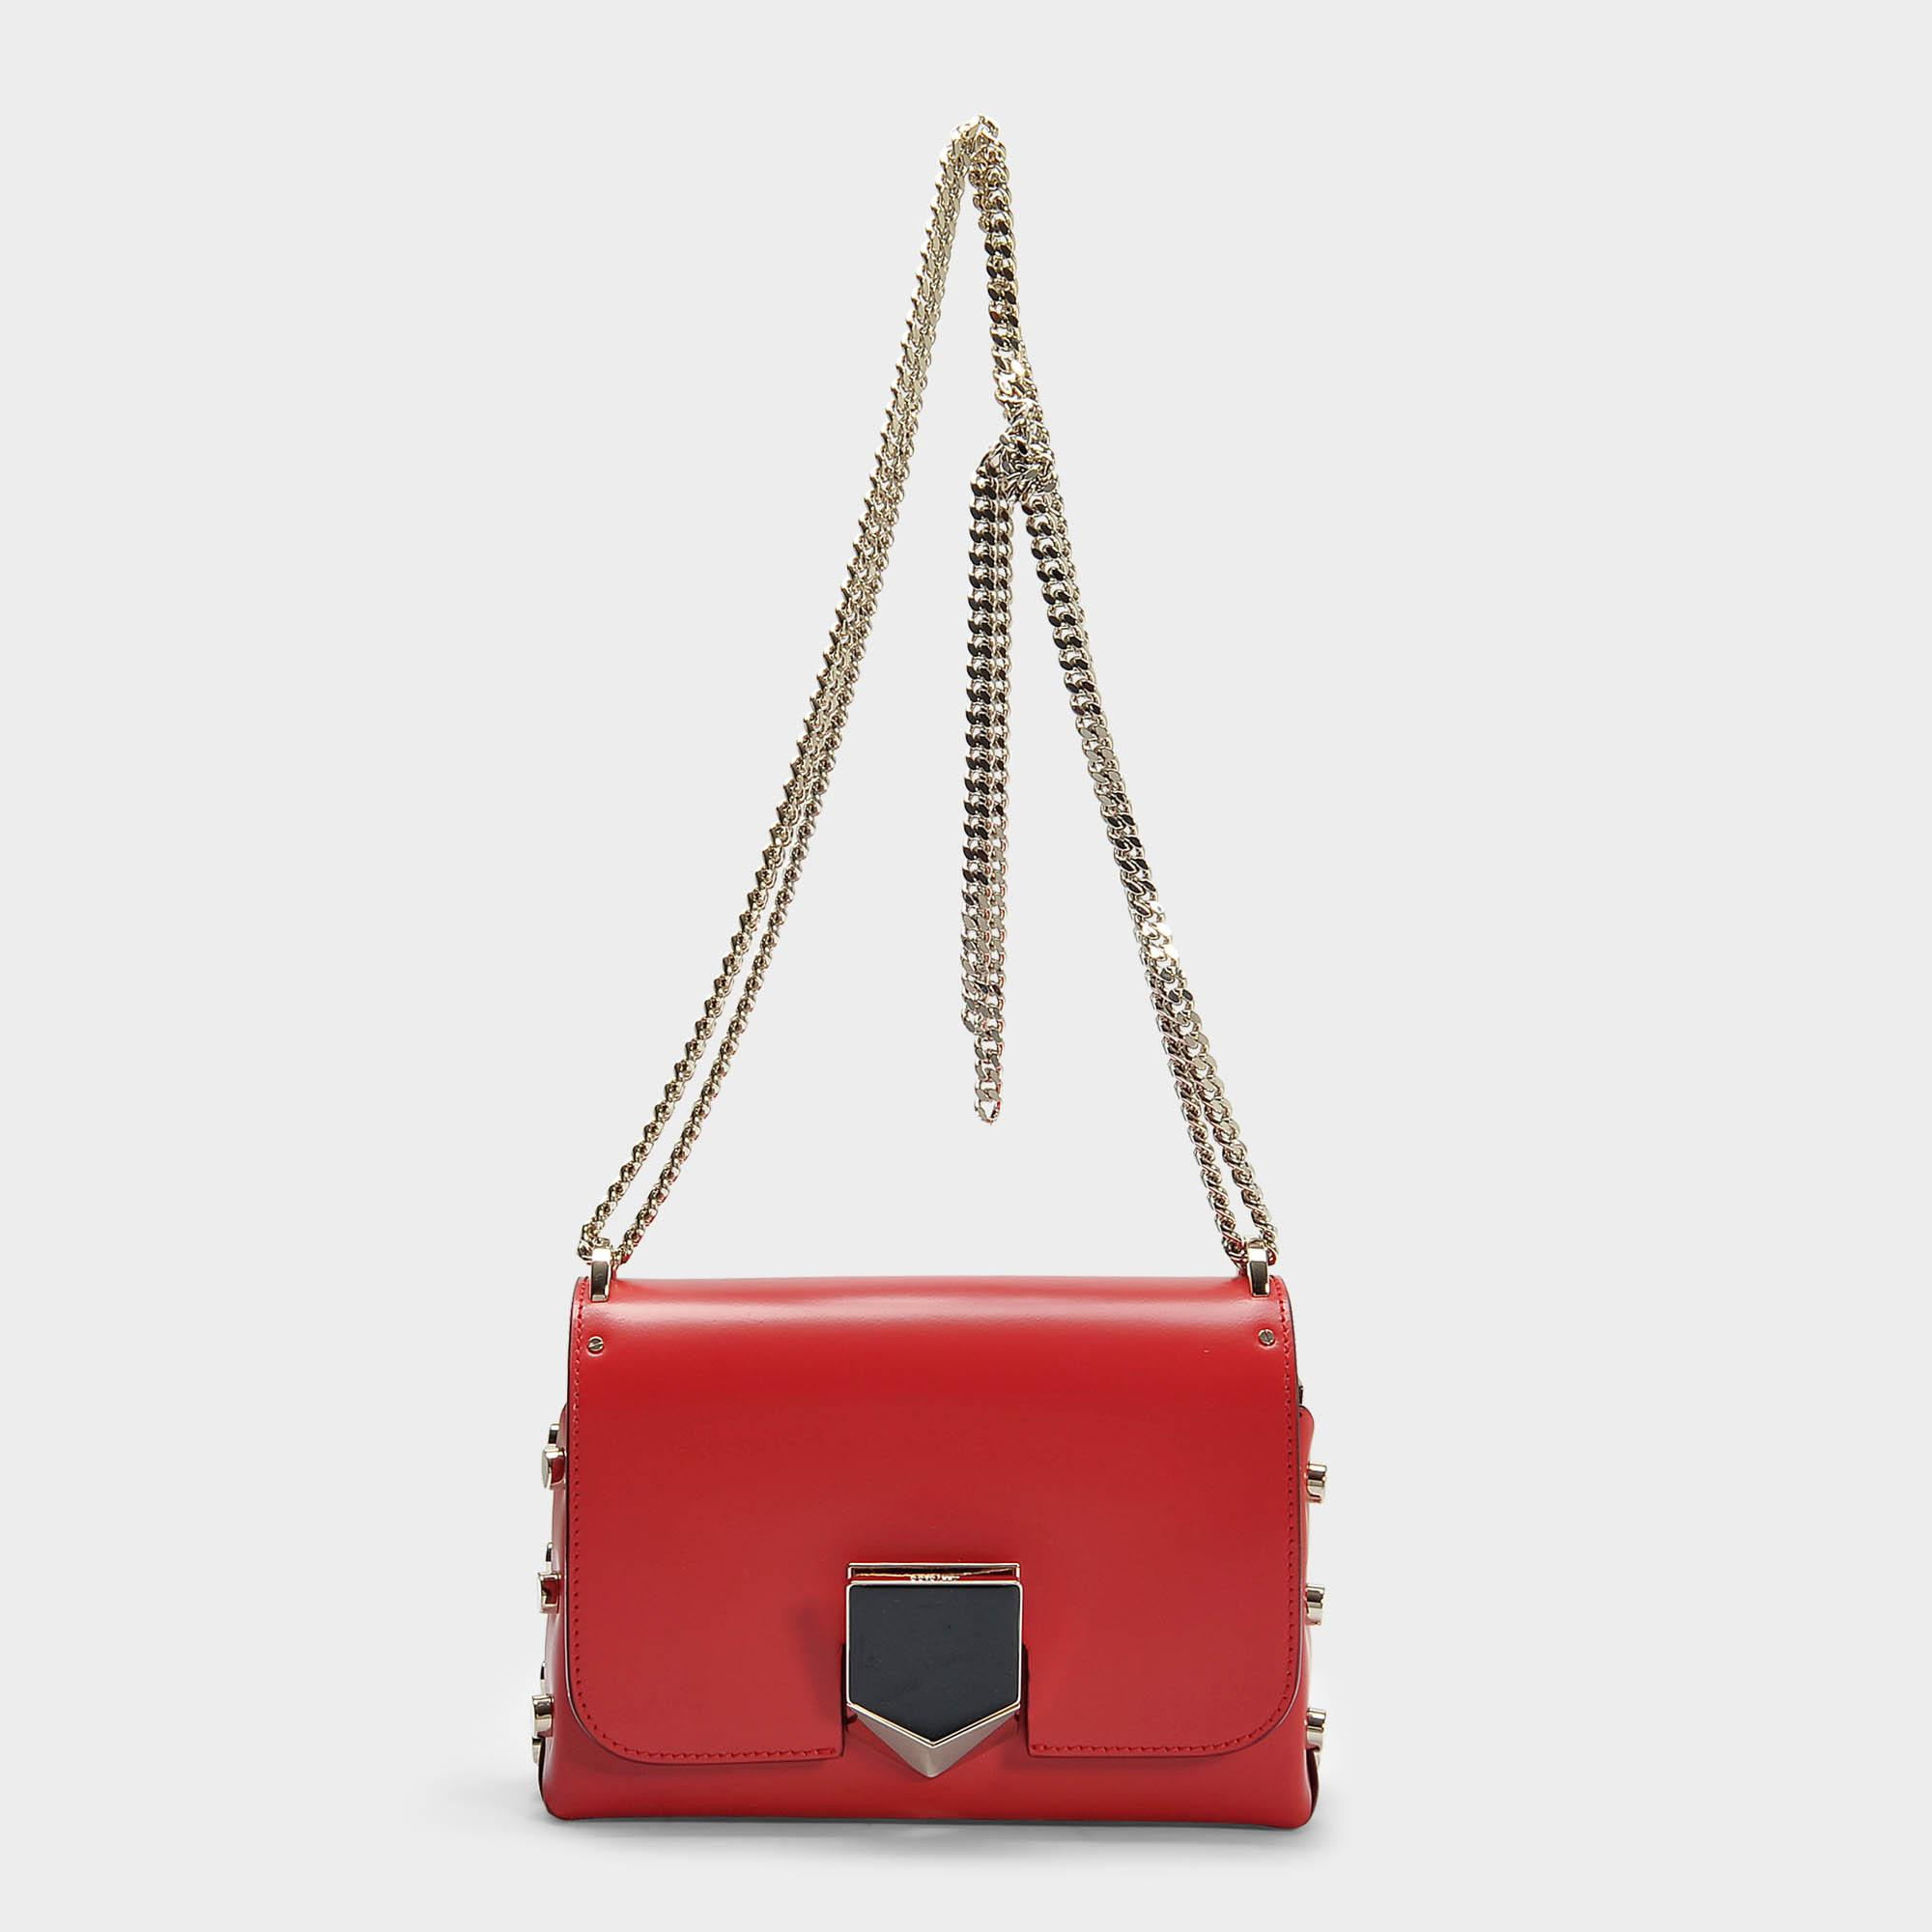 Lockett Petite Bag in Red and Chrome Spazzolato Leather Jimmy Choo London Pp3WS